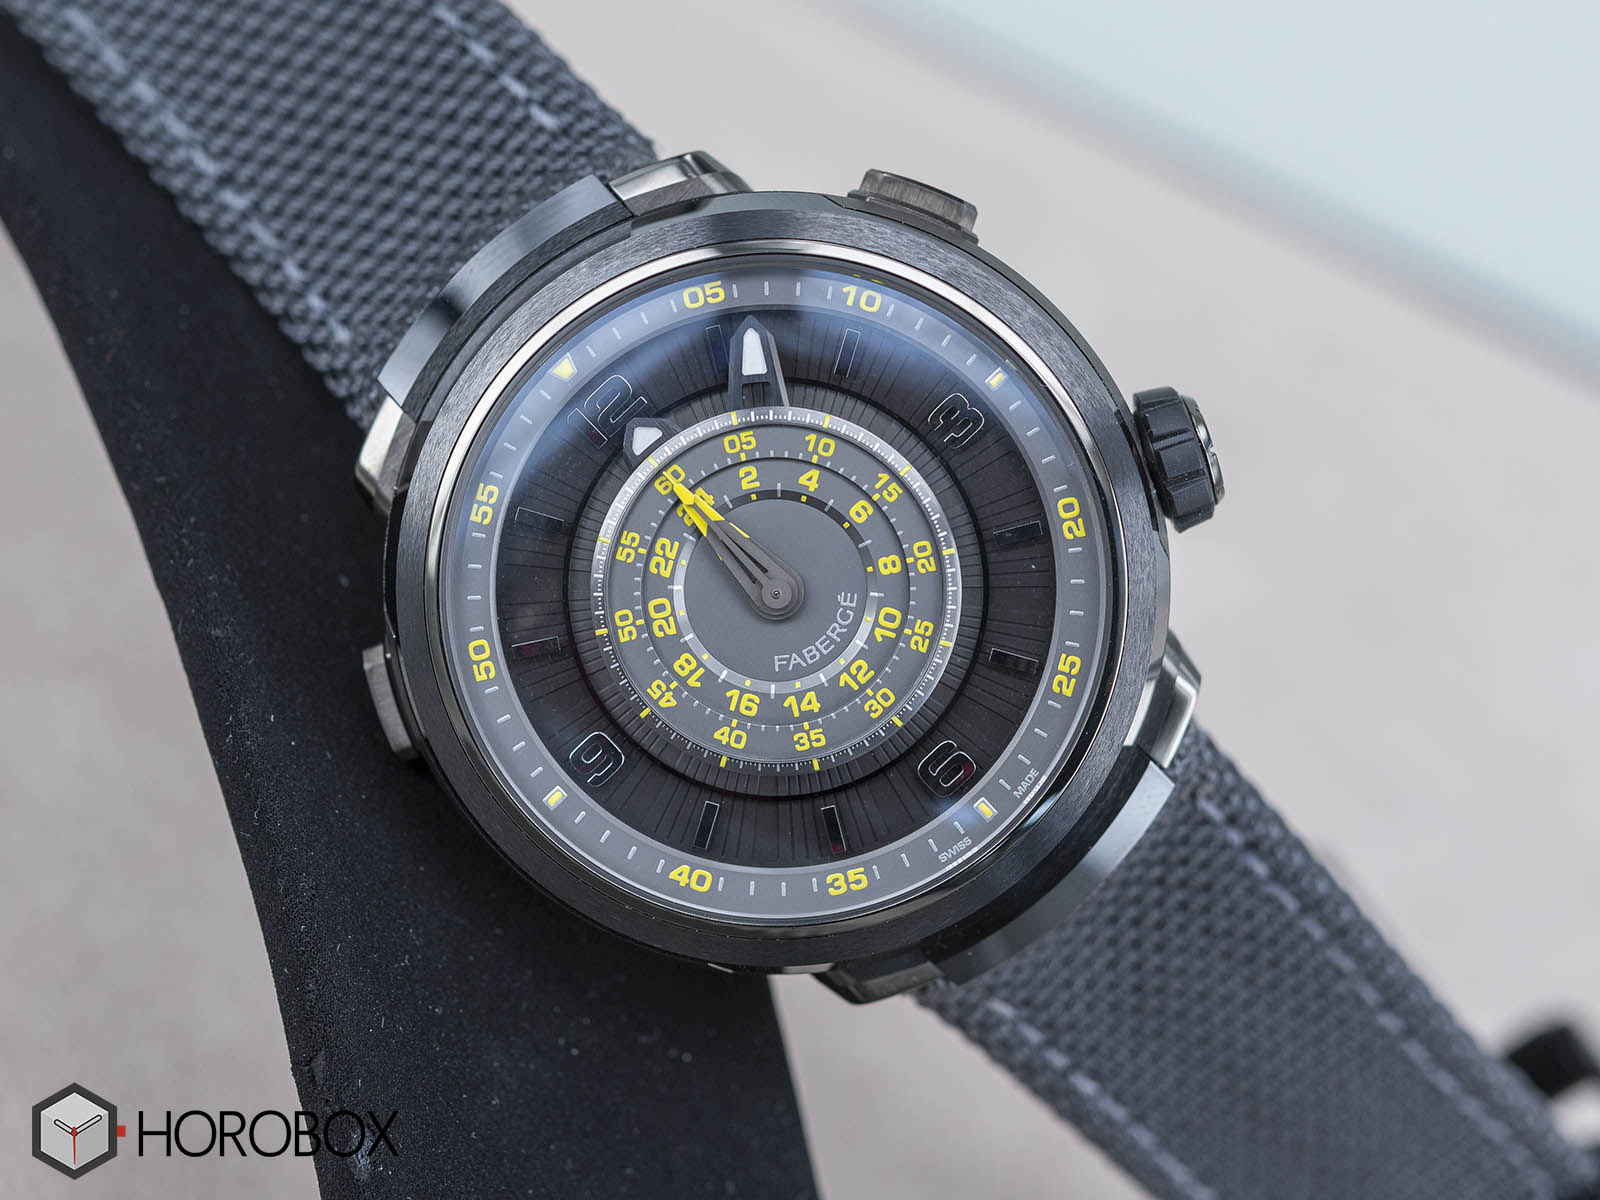 faberge-visionnaire-chronograph-onlywatch-1.jpg